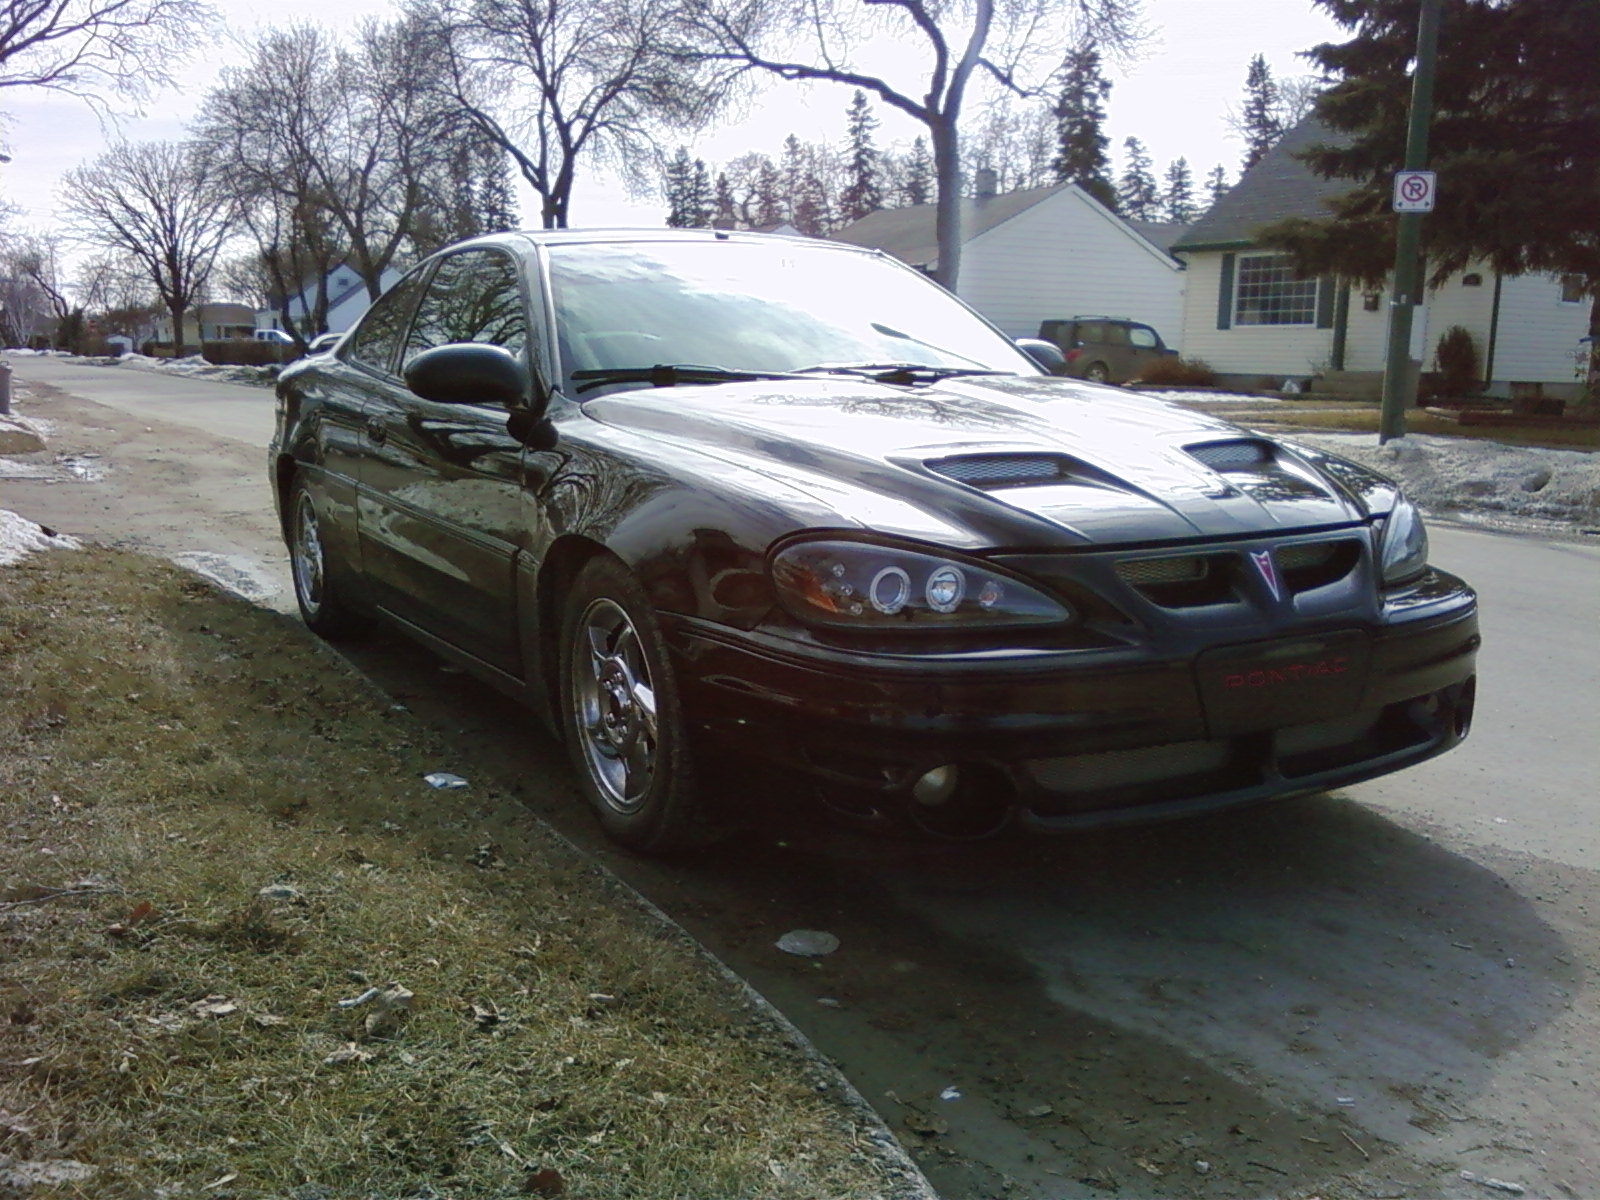 03GAGT1SCT 2003 Pontiac Grand Am 14122304